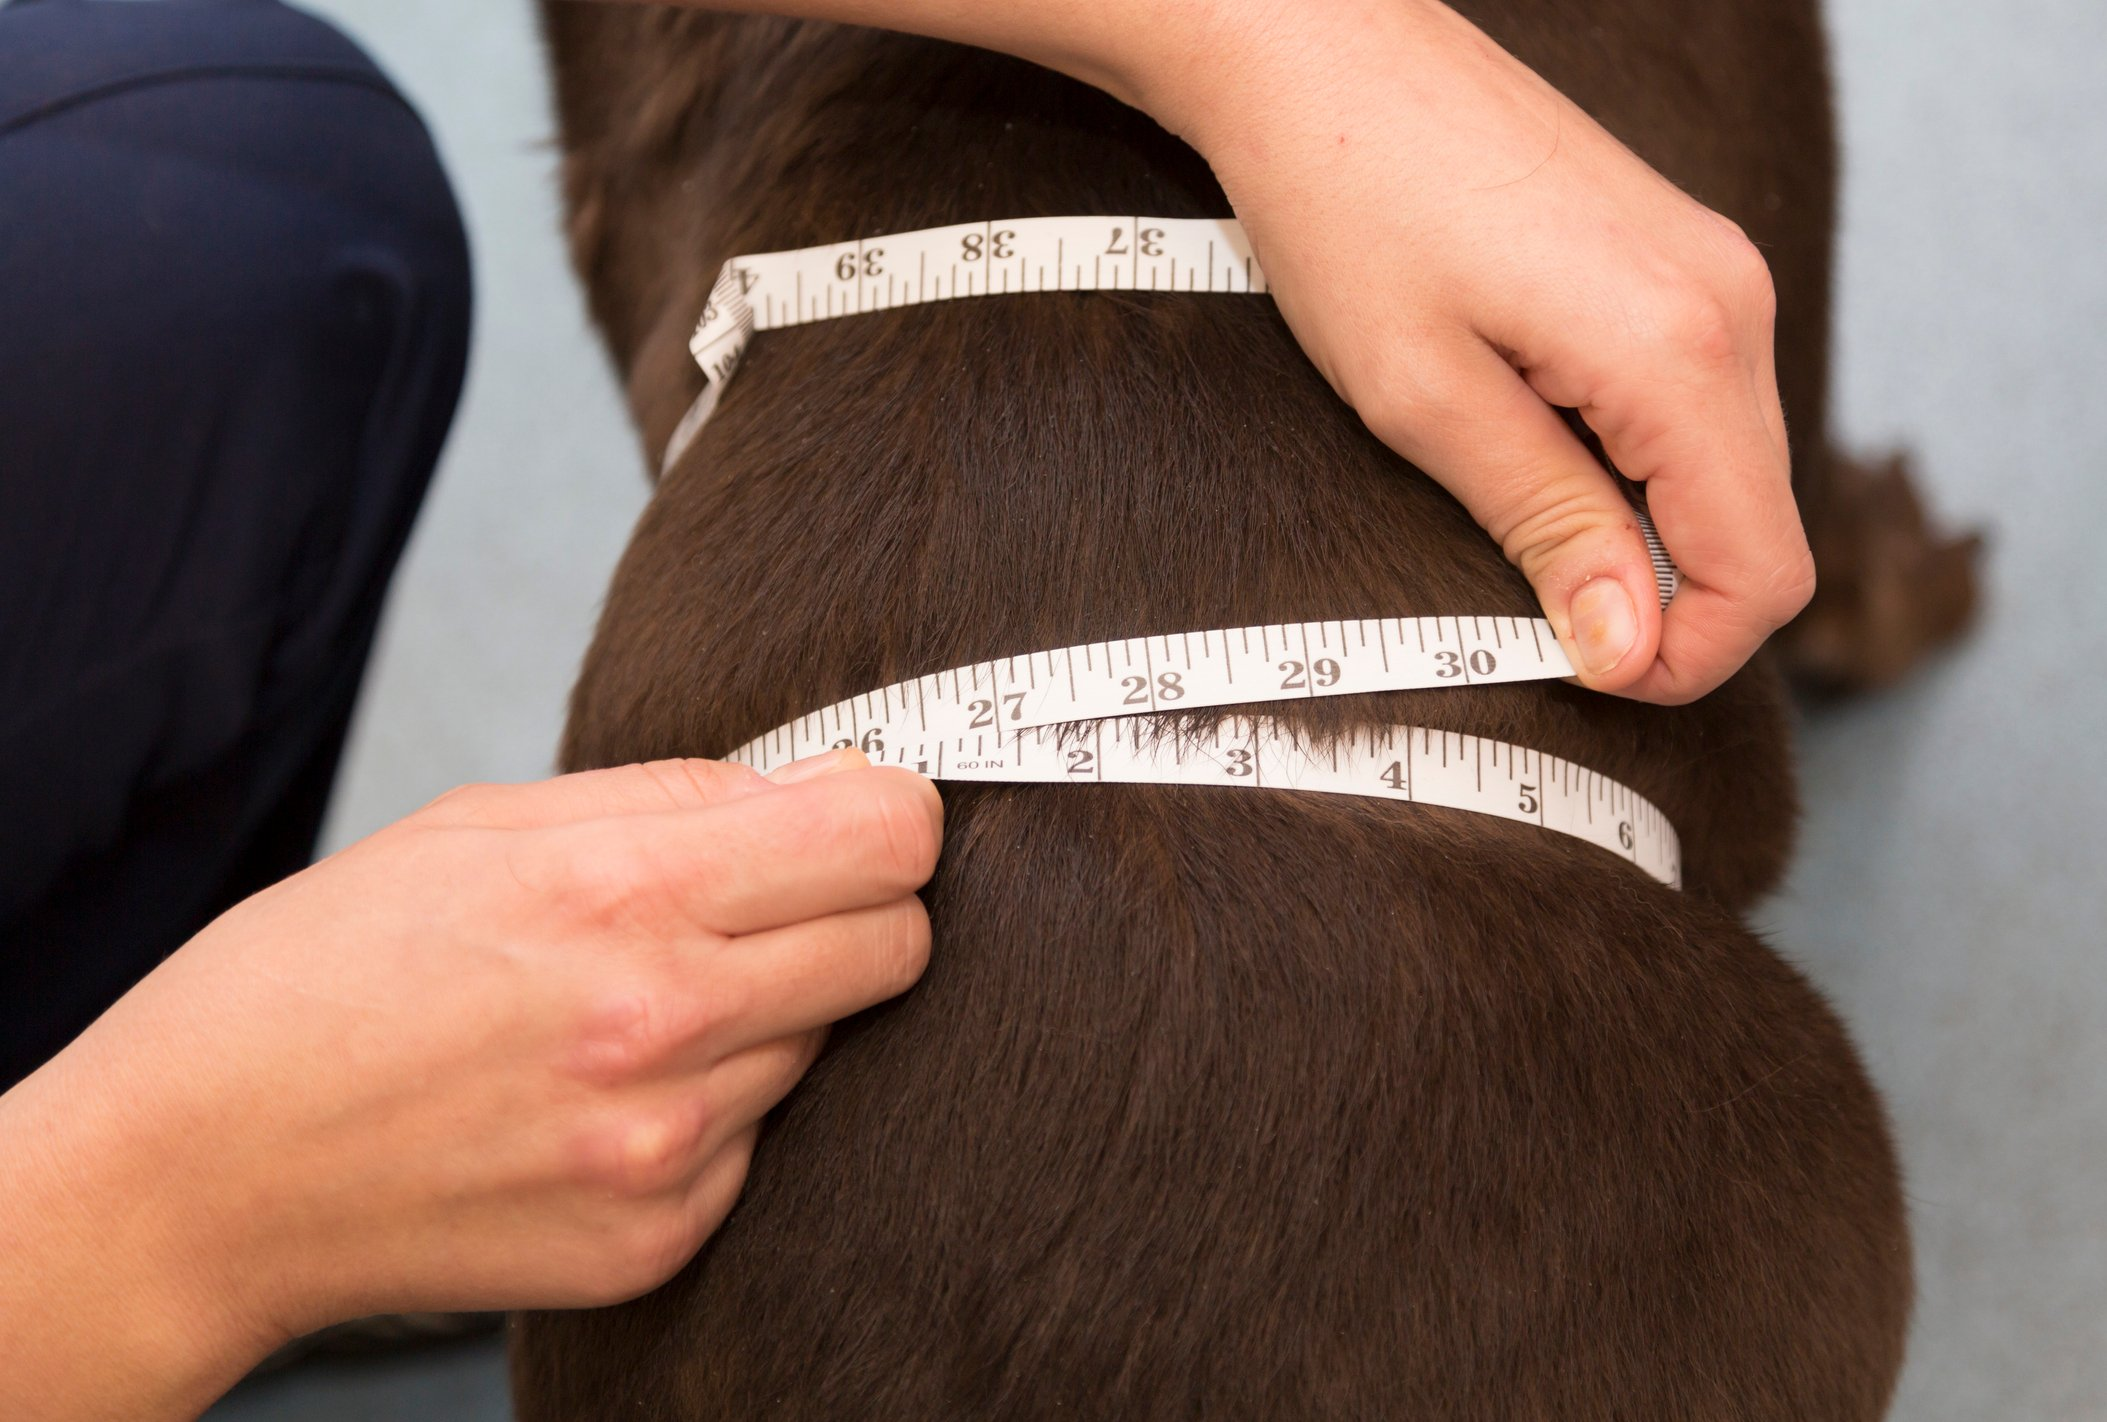 An obese brown dog getting measured with tailor's measuring tape